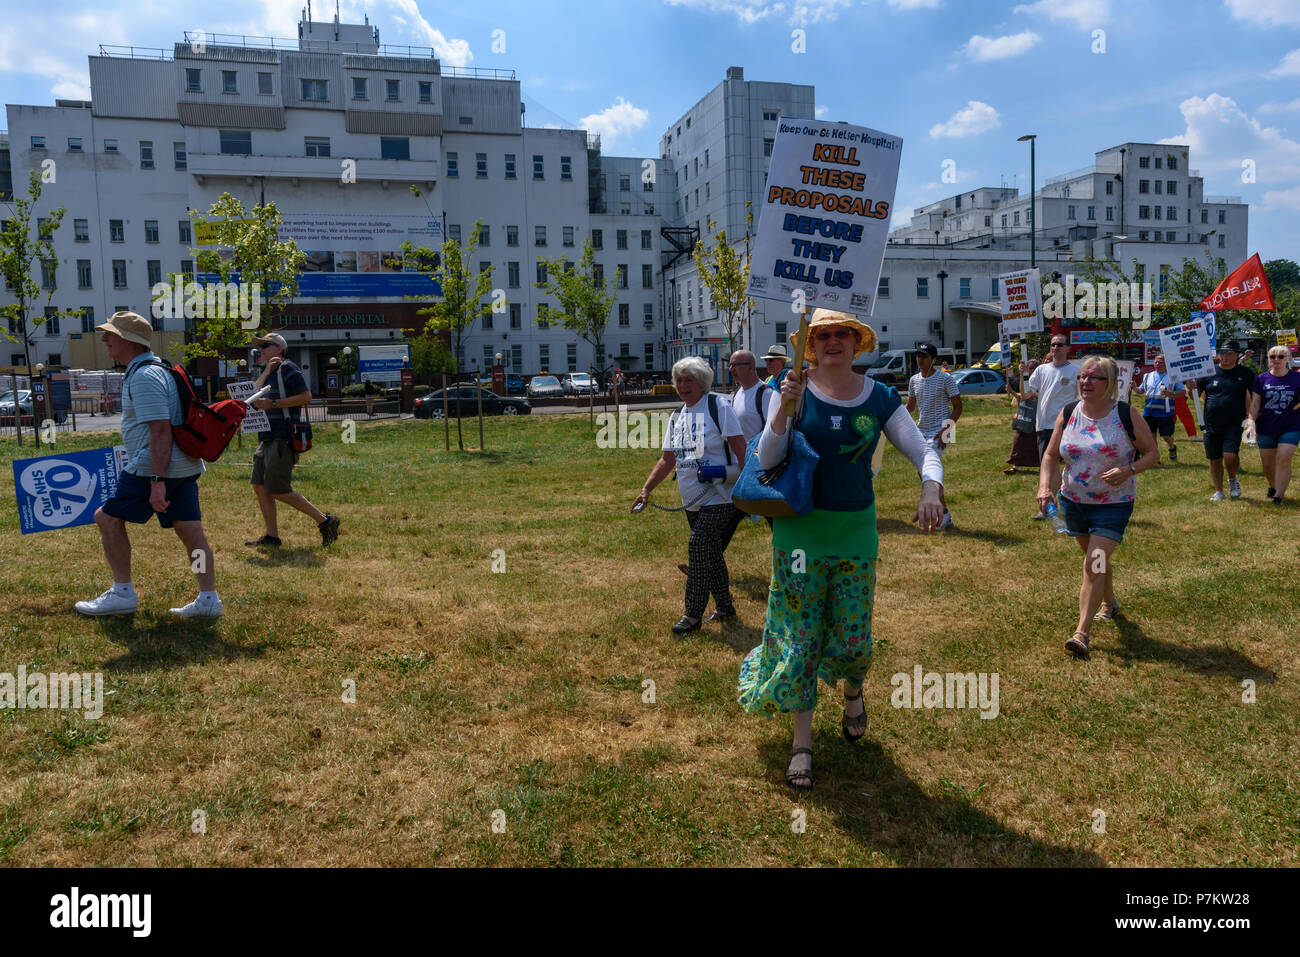 London, UK. 7th July 2018. Keep Our St Helier Hospital (KOSHH) campaigners against the closure of acute facilities at Epsom and St Helier Hospitals in south London celebrating the 70th Birthday of the NHS with a march from Sutton arrive in front of St Helier Hospital for a rally.  The closures are prompted by government cuts which call for huge savings by the trust, and would leave a wide swa Credit: Peter Marshall/Alamy Live News Stock Photo